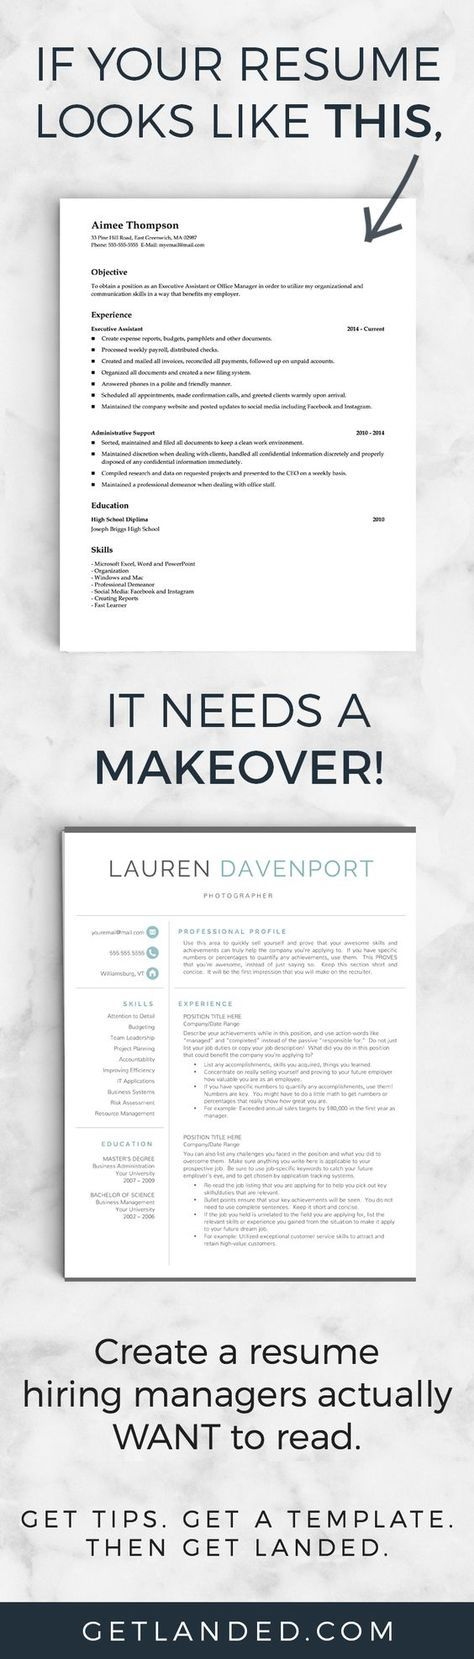 80 of candidates desperately need a resume makeover! Get a resume - how does a resume looks like